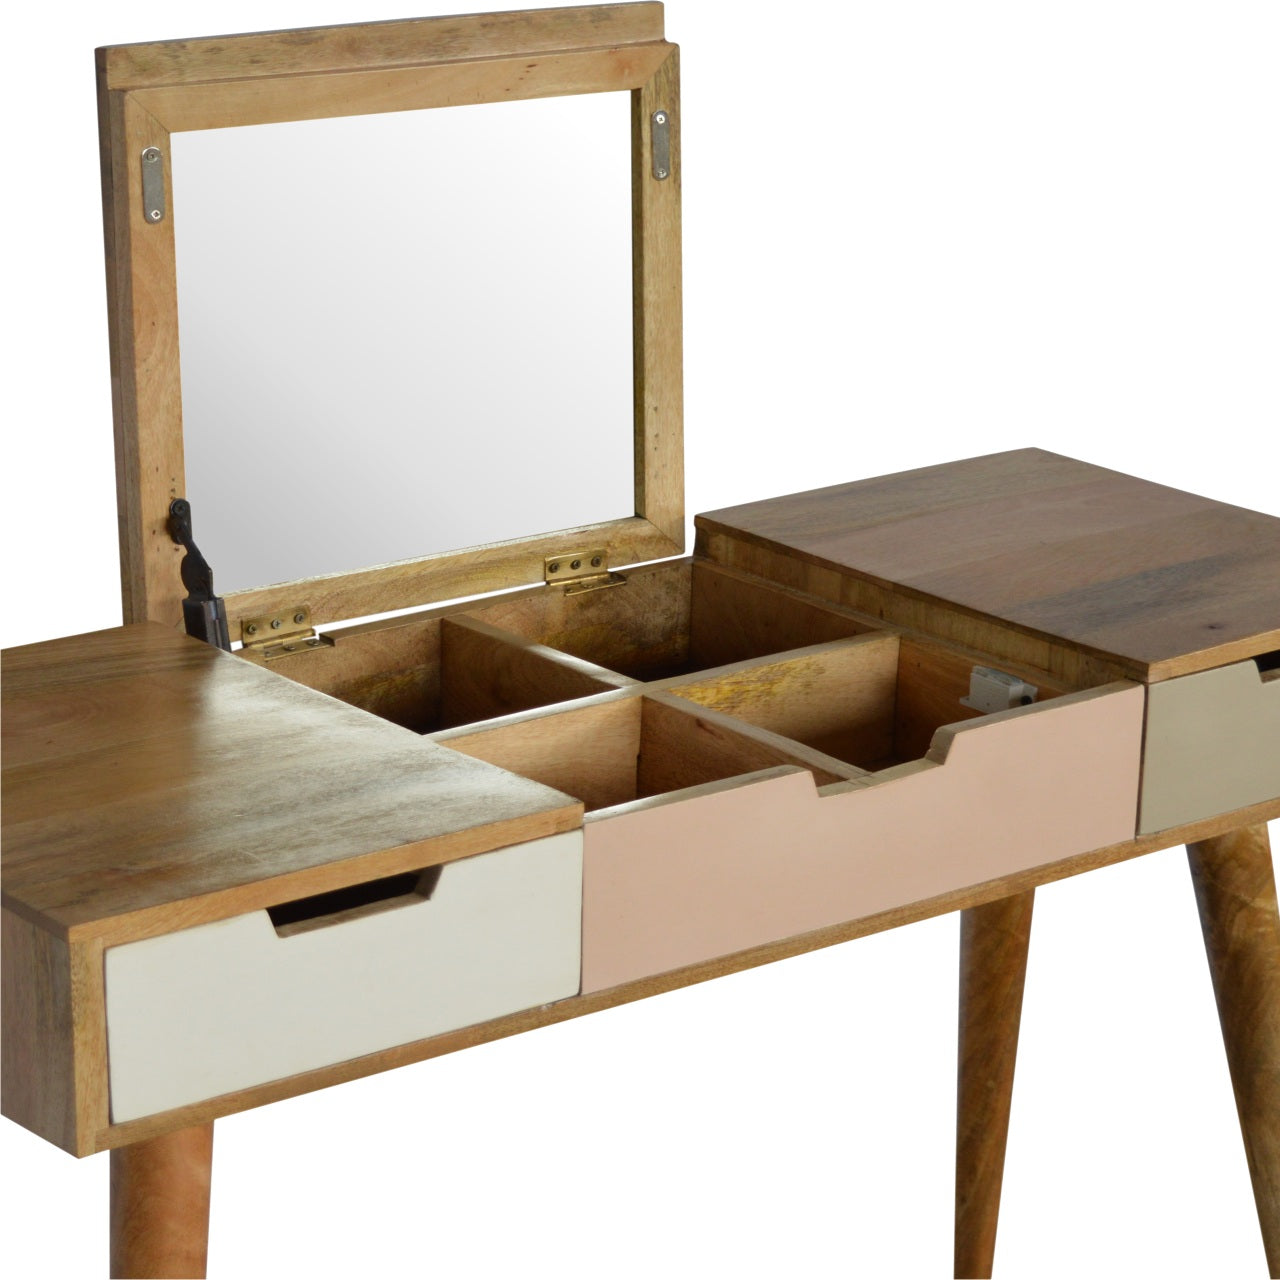 Blush Pink Dressing Table with Foldable Mirror